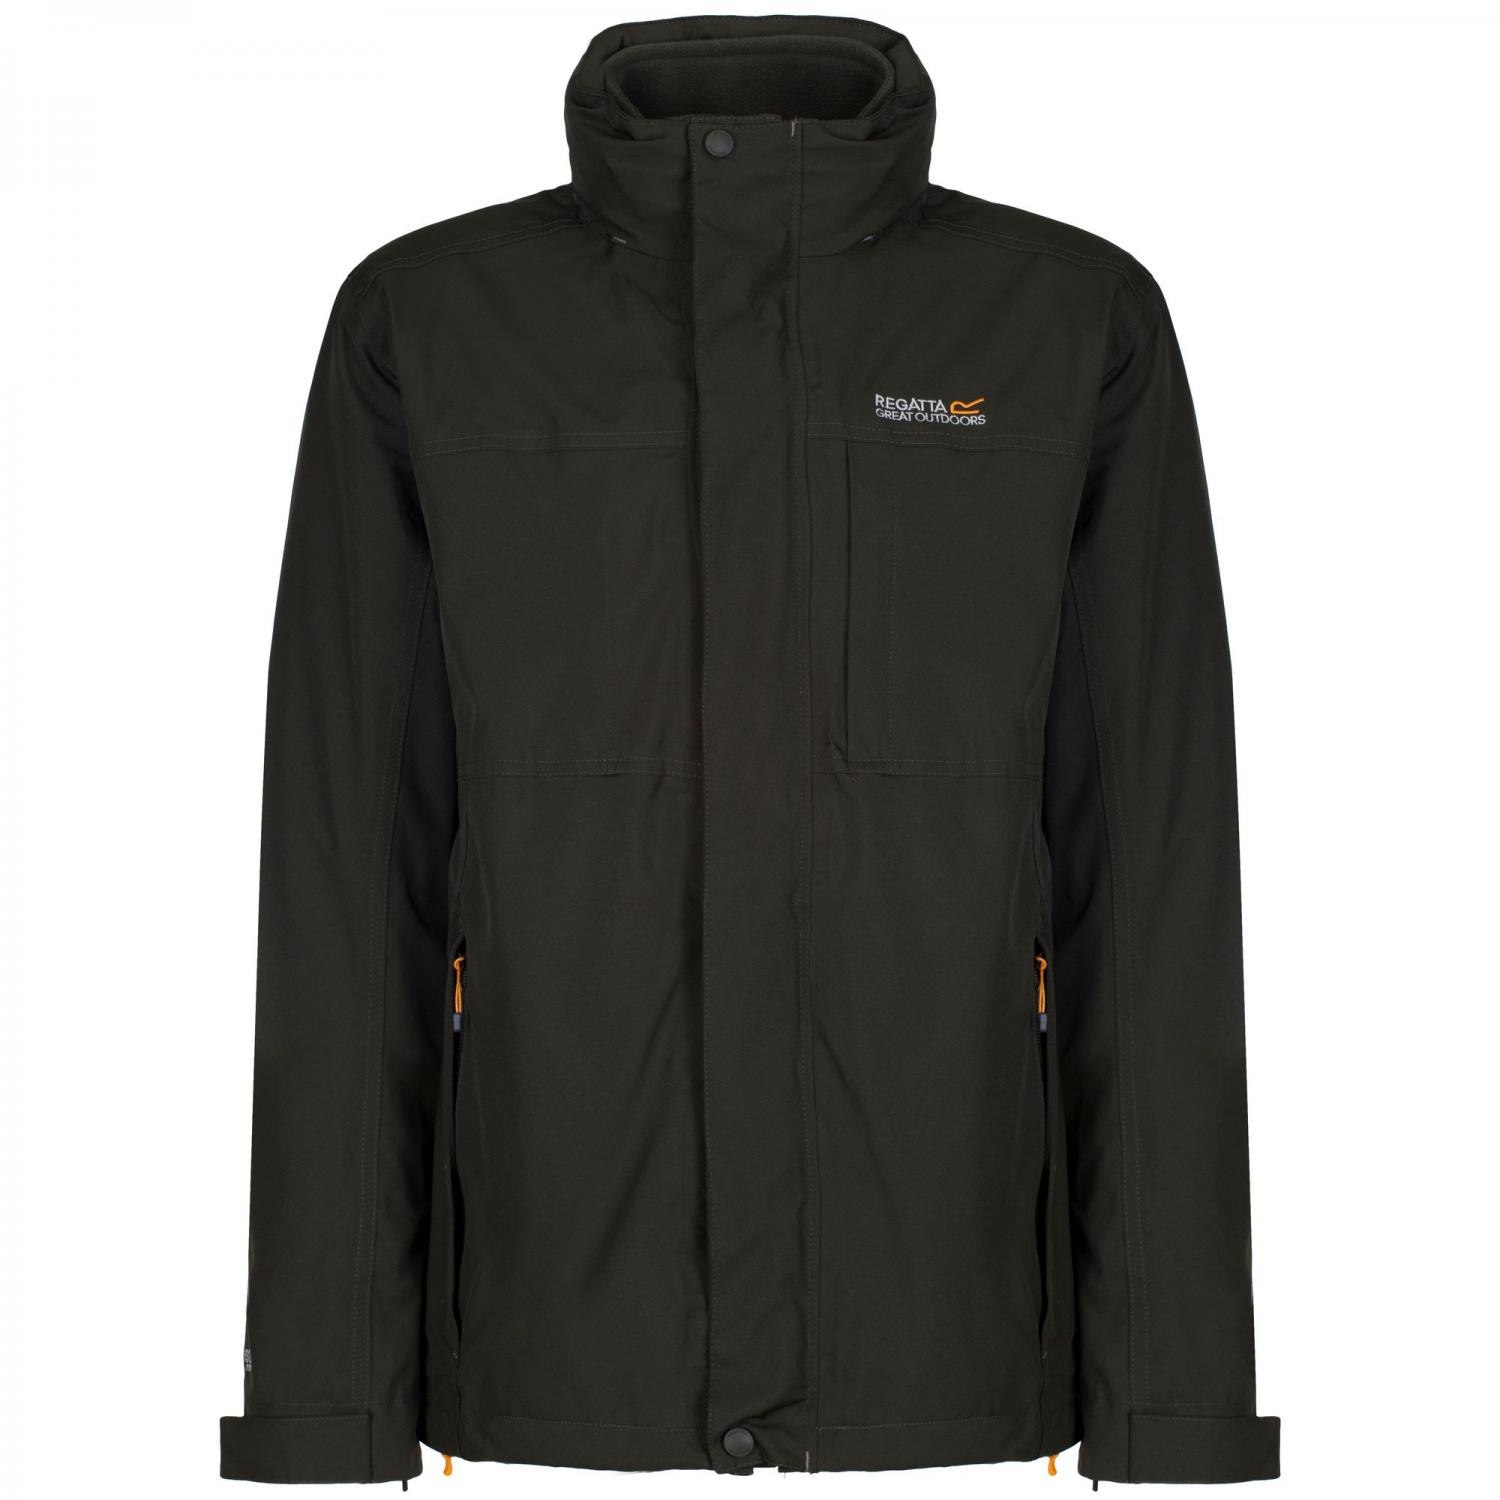 Northmore 3 in 1 Jacket Bayleaf